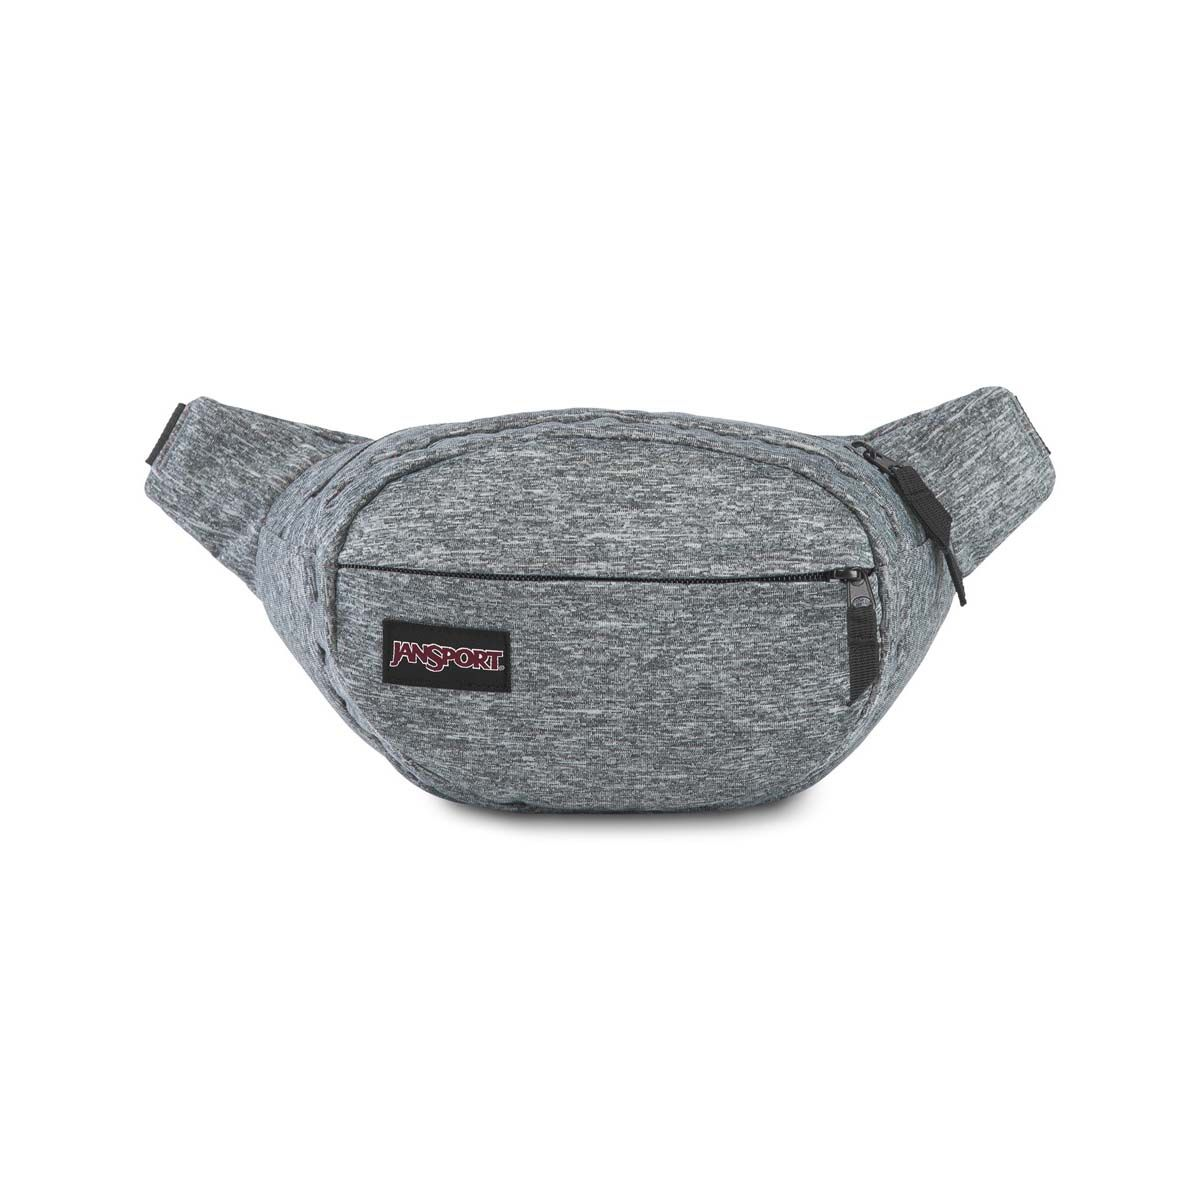 JanSport Fifth Ave FX Fanny Pack in Black Woven Knit